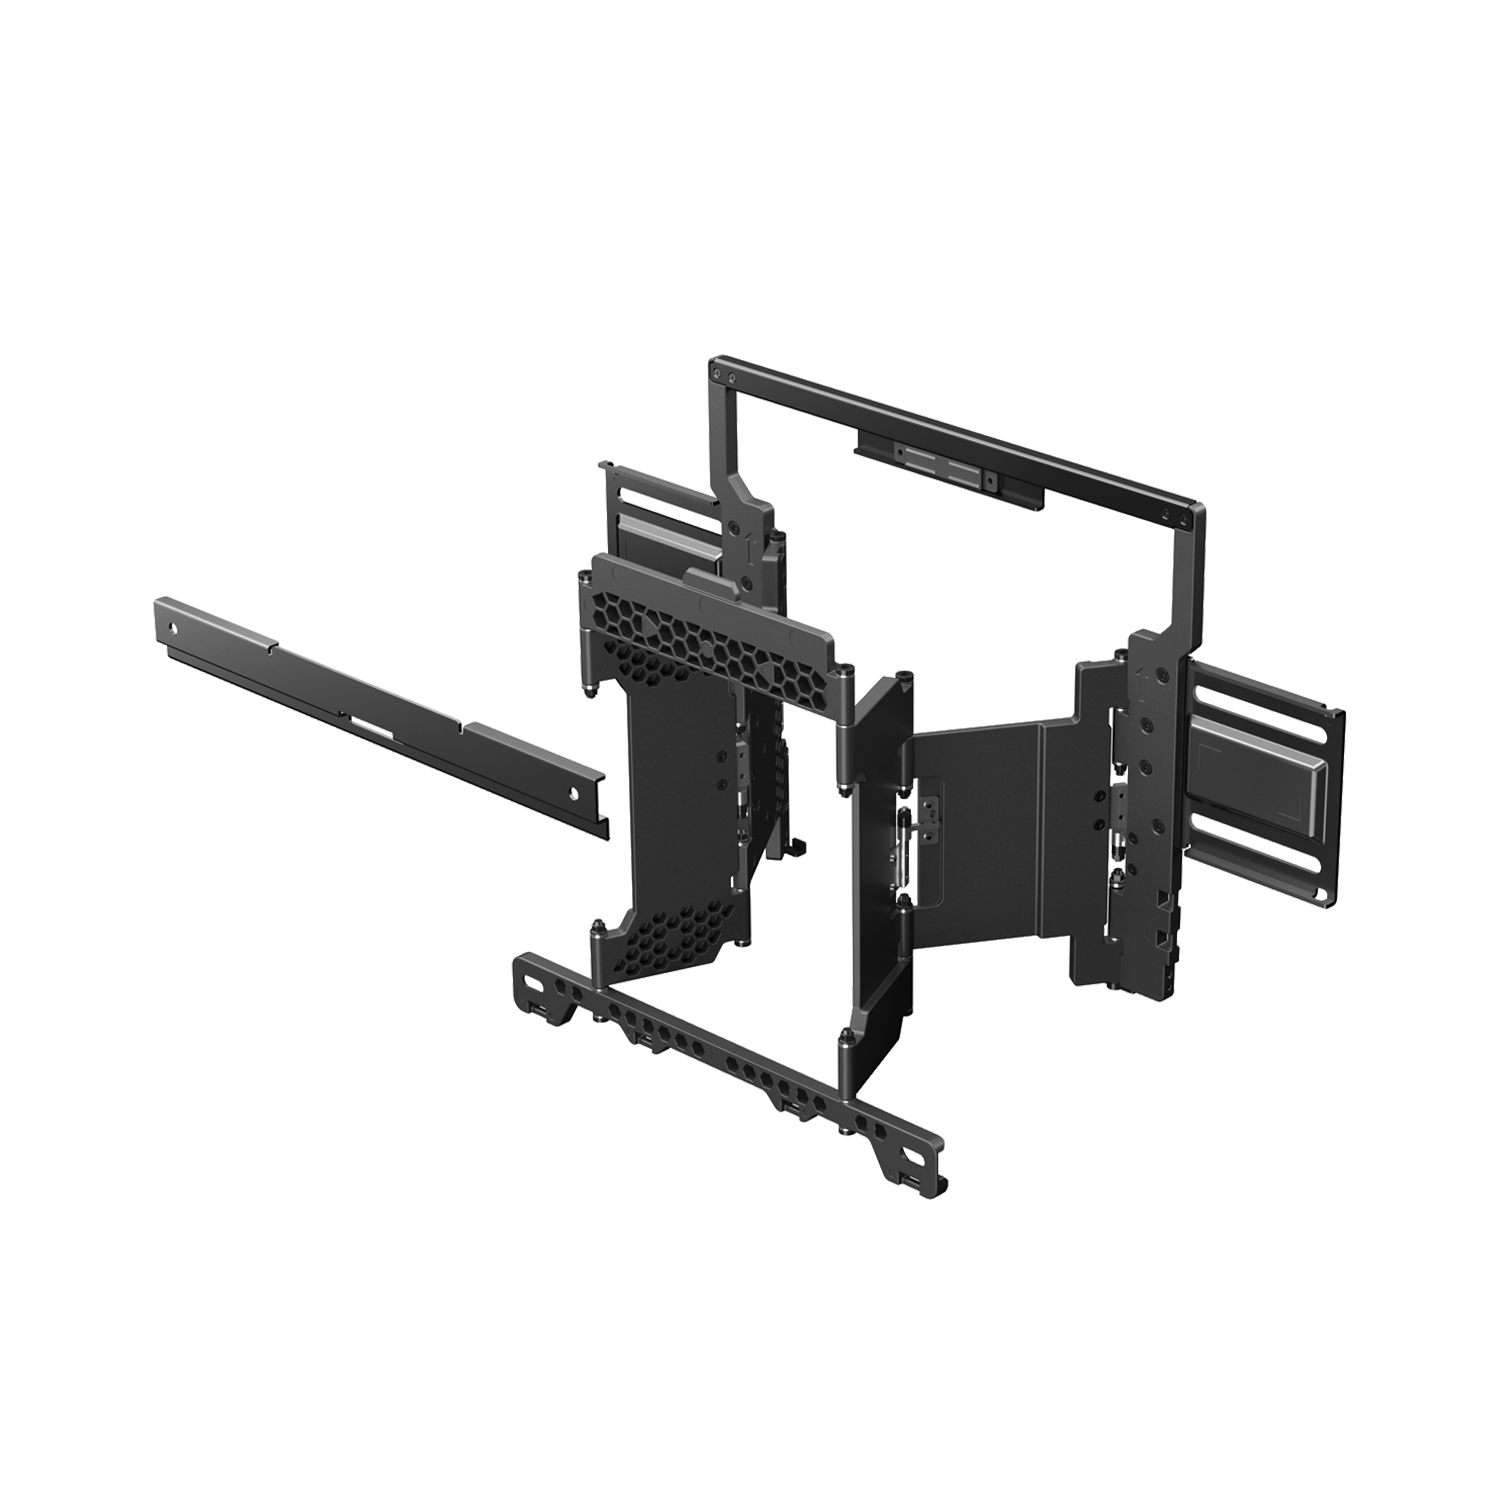 SU-WL850 Wall-Mount Bracket, , product-image